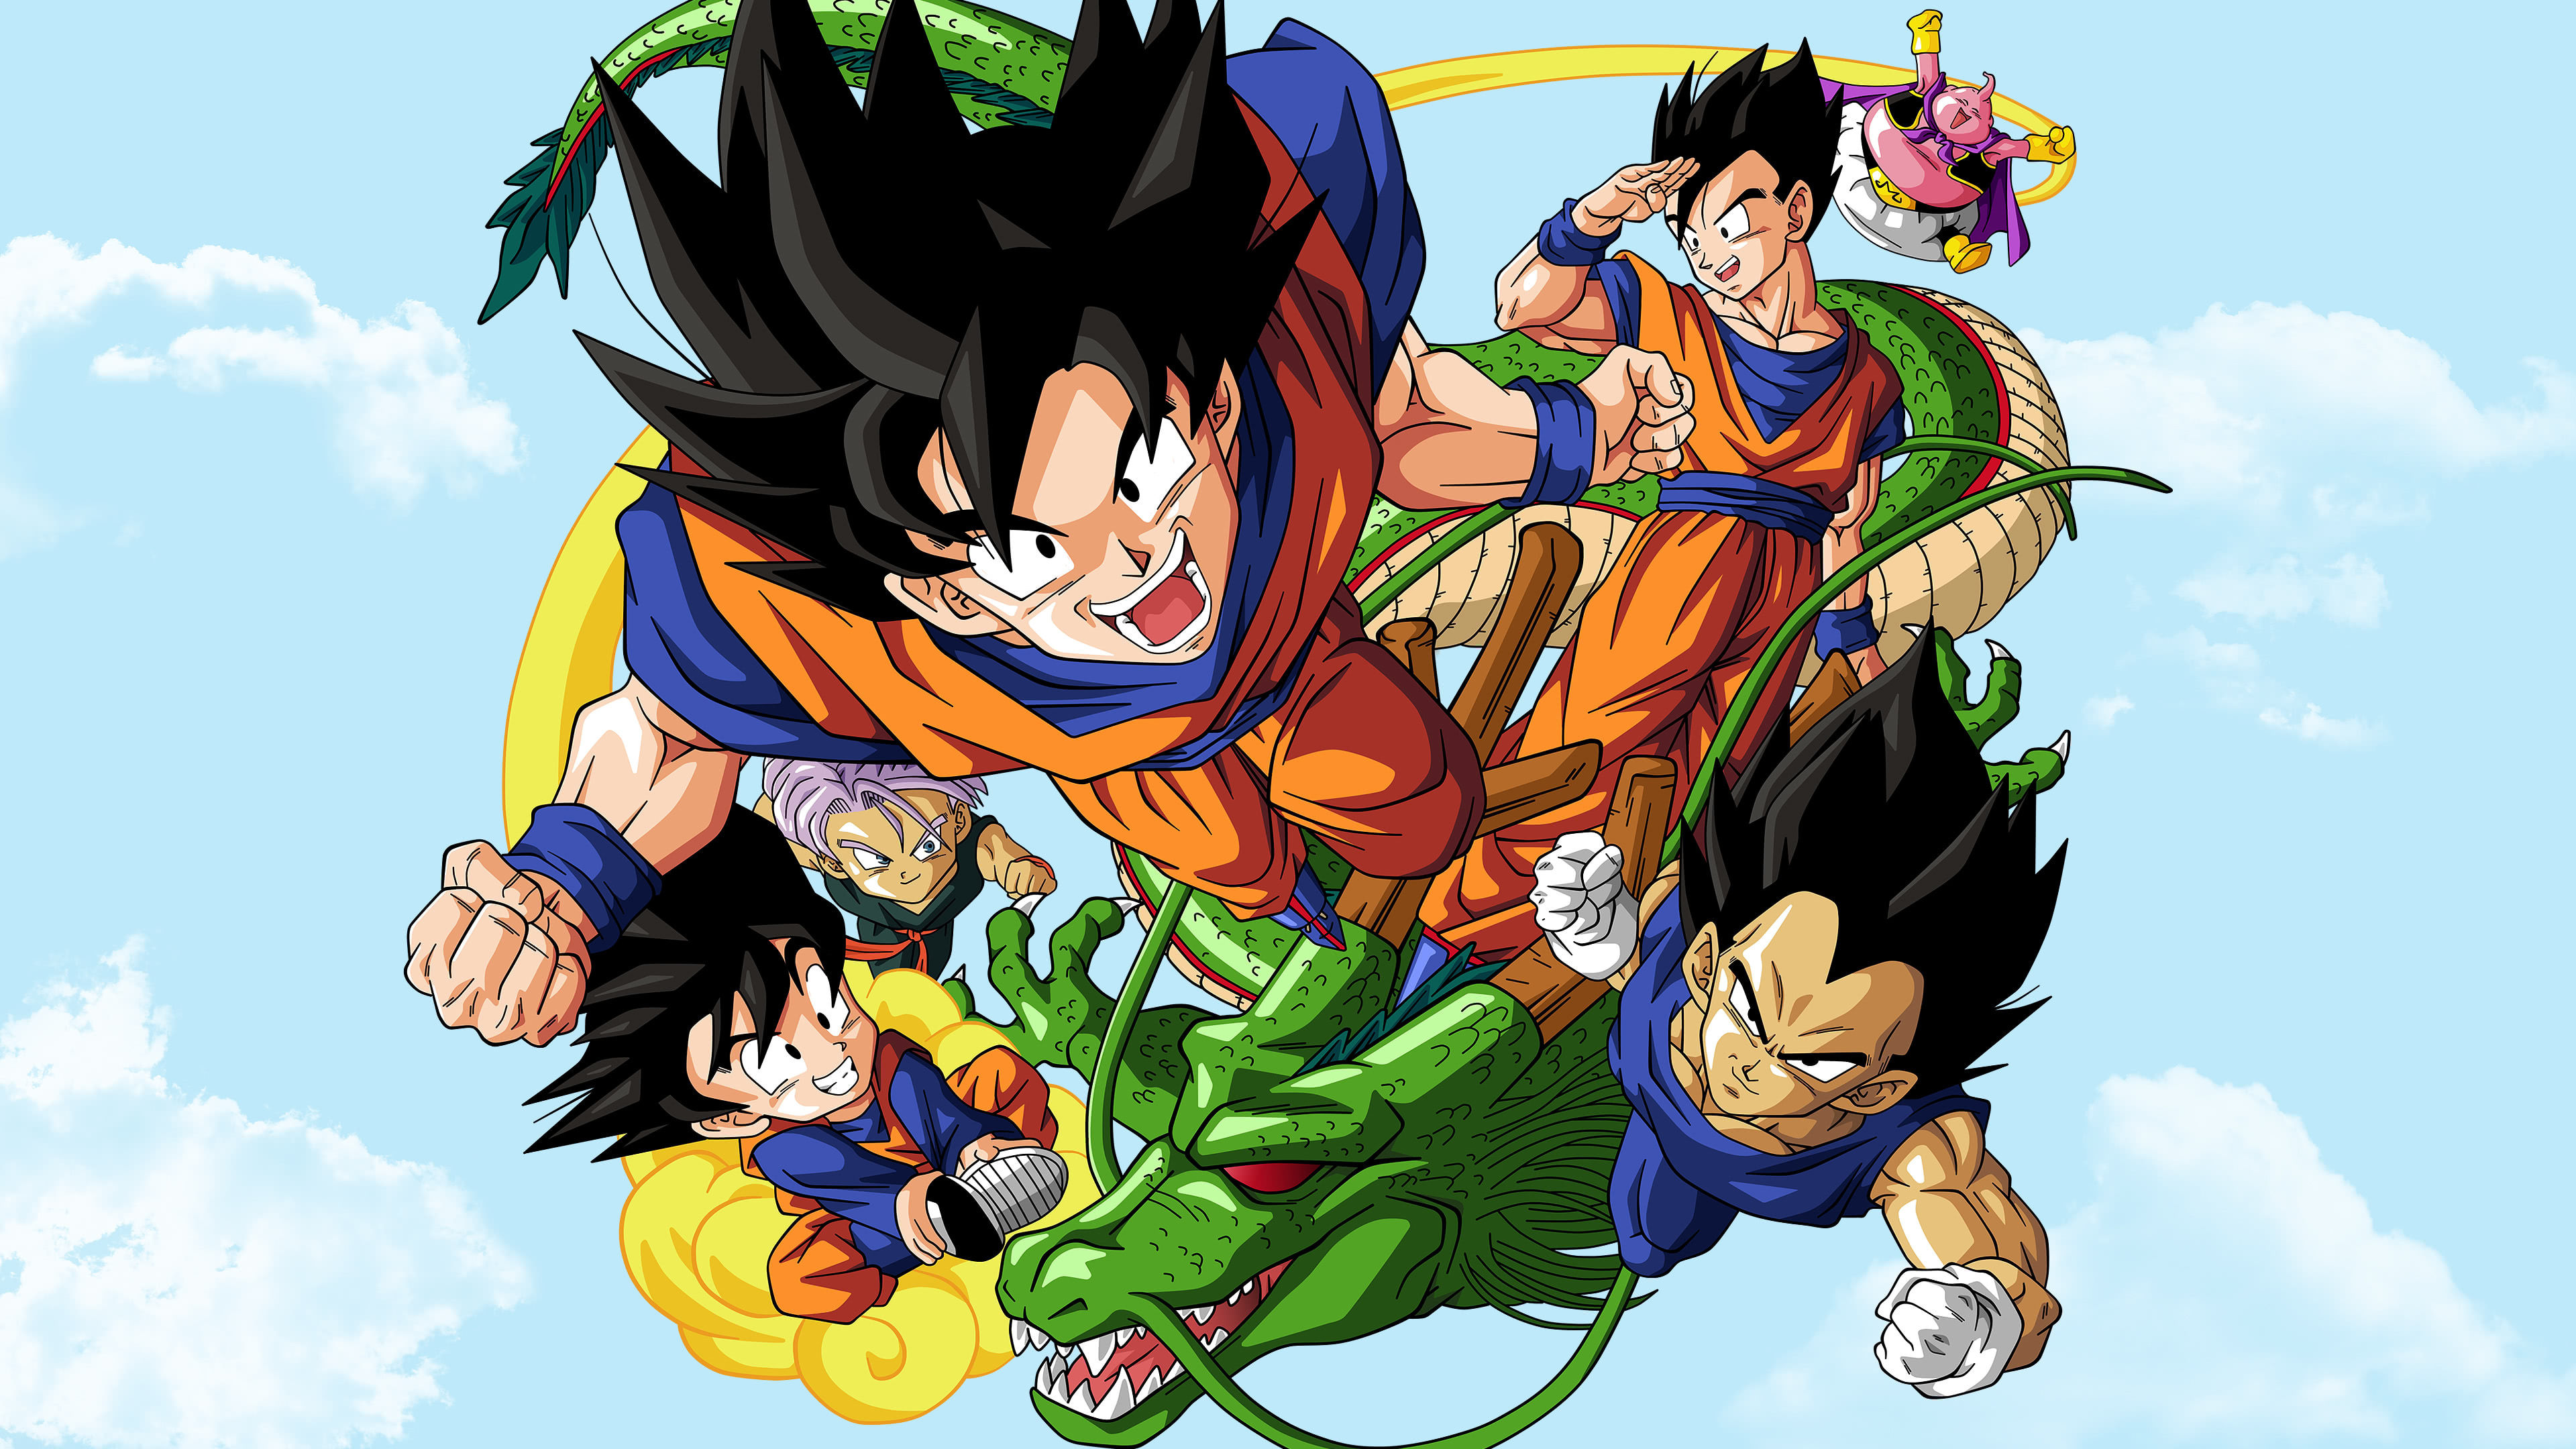 dragon ball z poster uhd 4k wallpaper